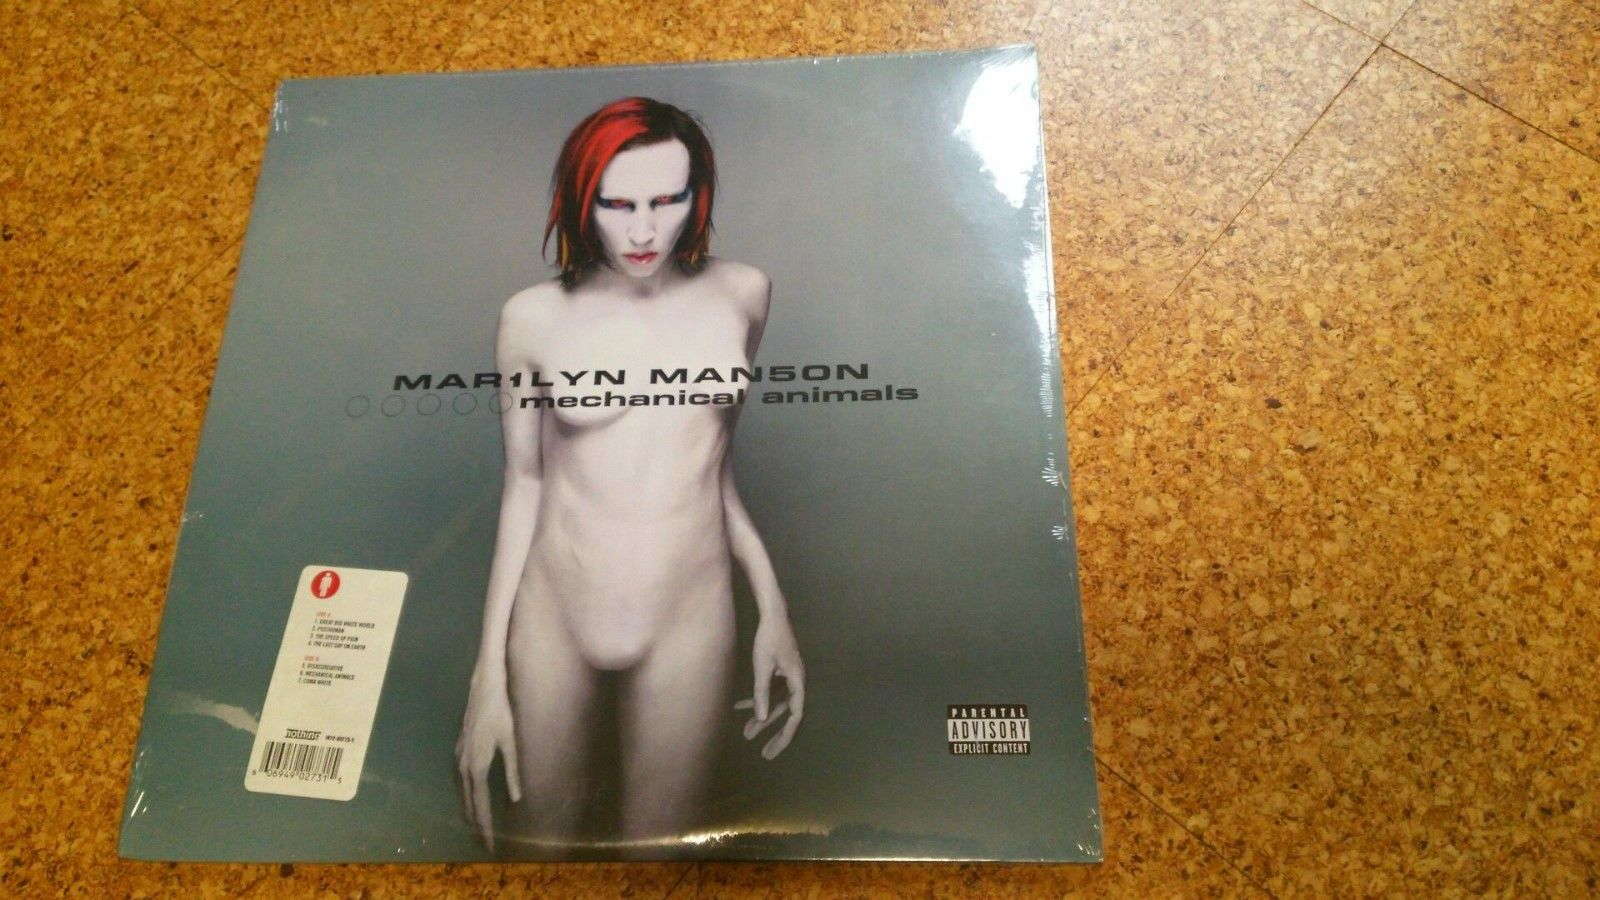 Marilyn Manson - Mechanical Animals 2 LPs vinyl still SEALED.